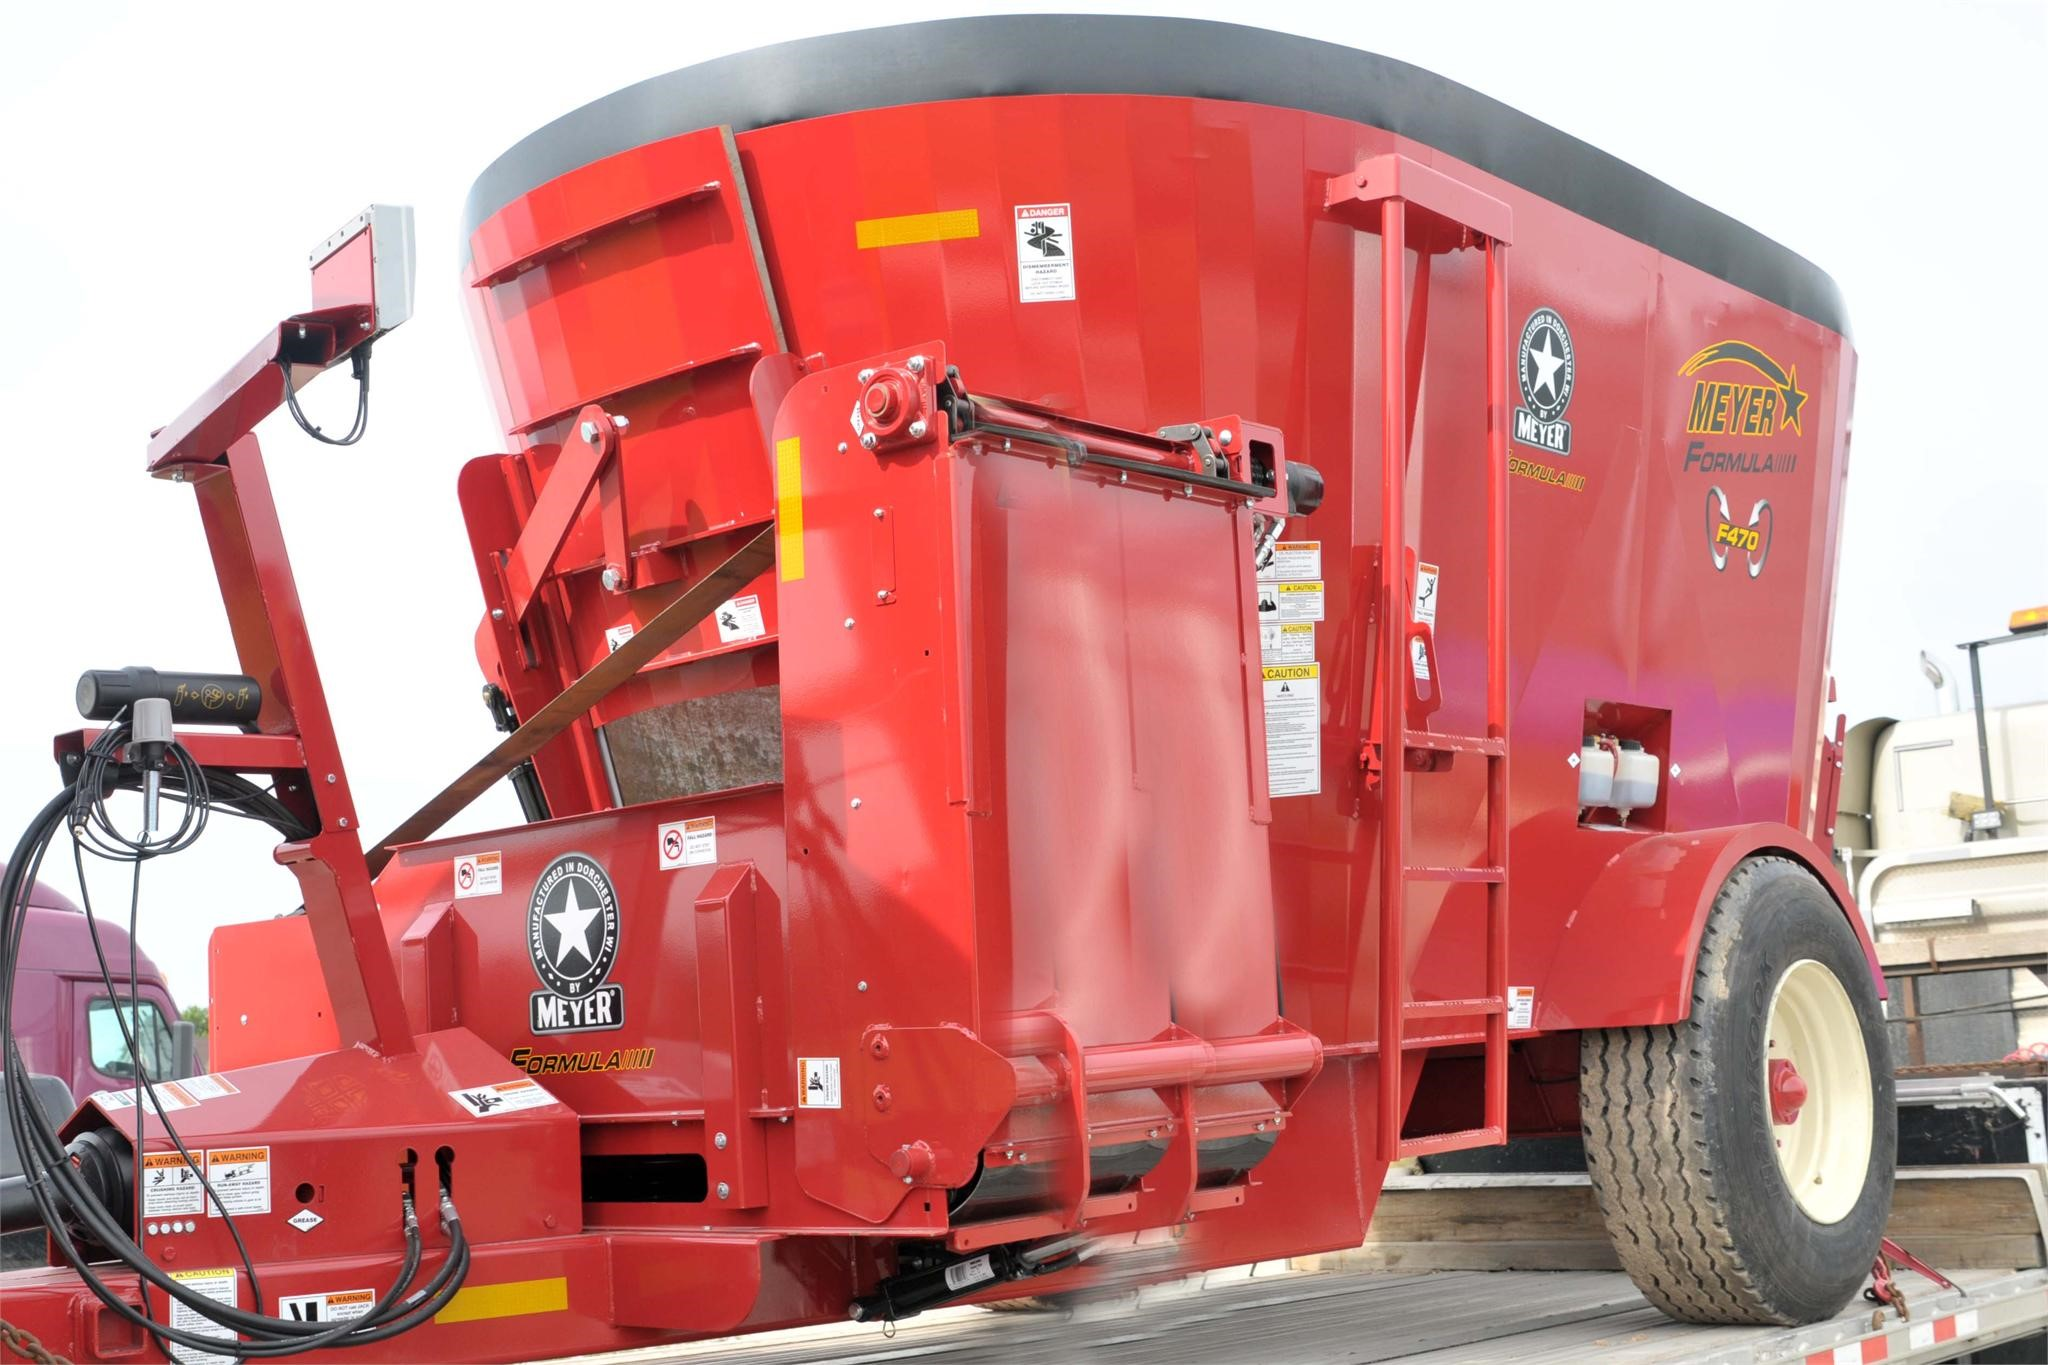 2021 Meyer F470 Grinders and Mixer